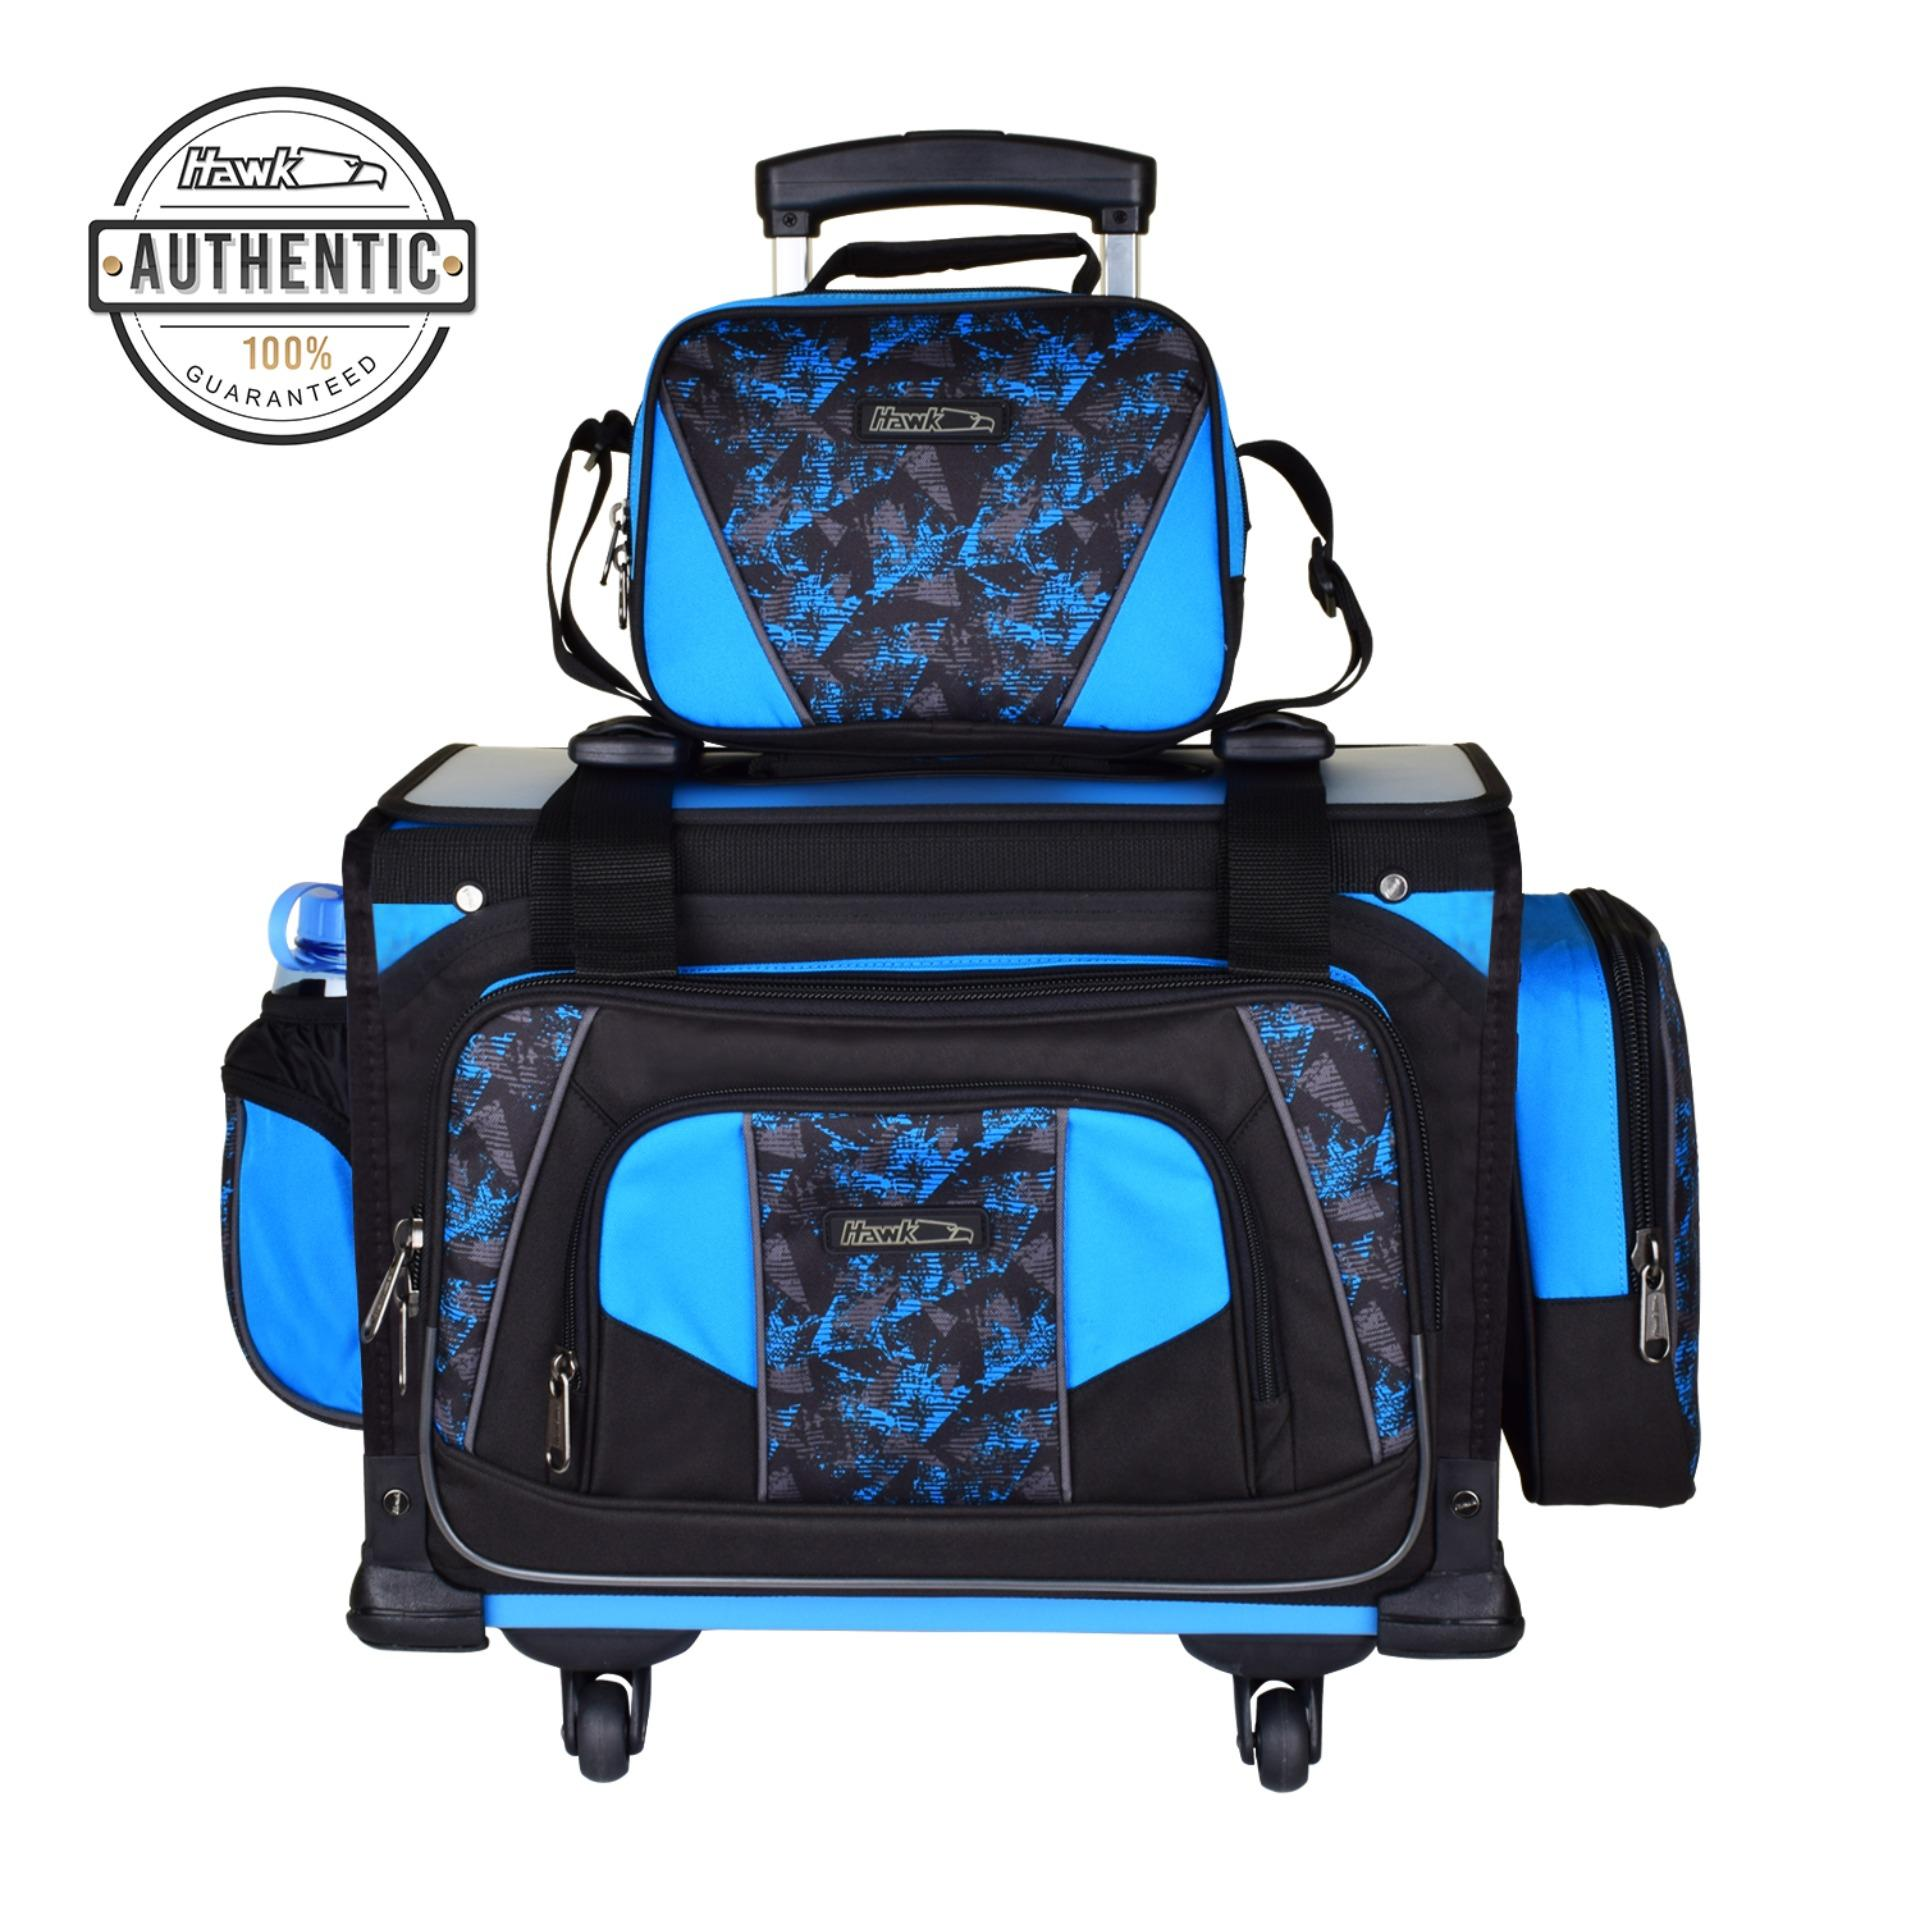 9dc23f558b59 Luggage Bags for Kids for sale - Kids  Luggage online brands